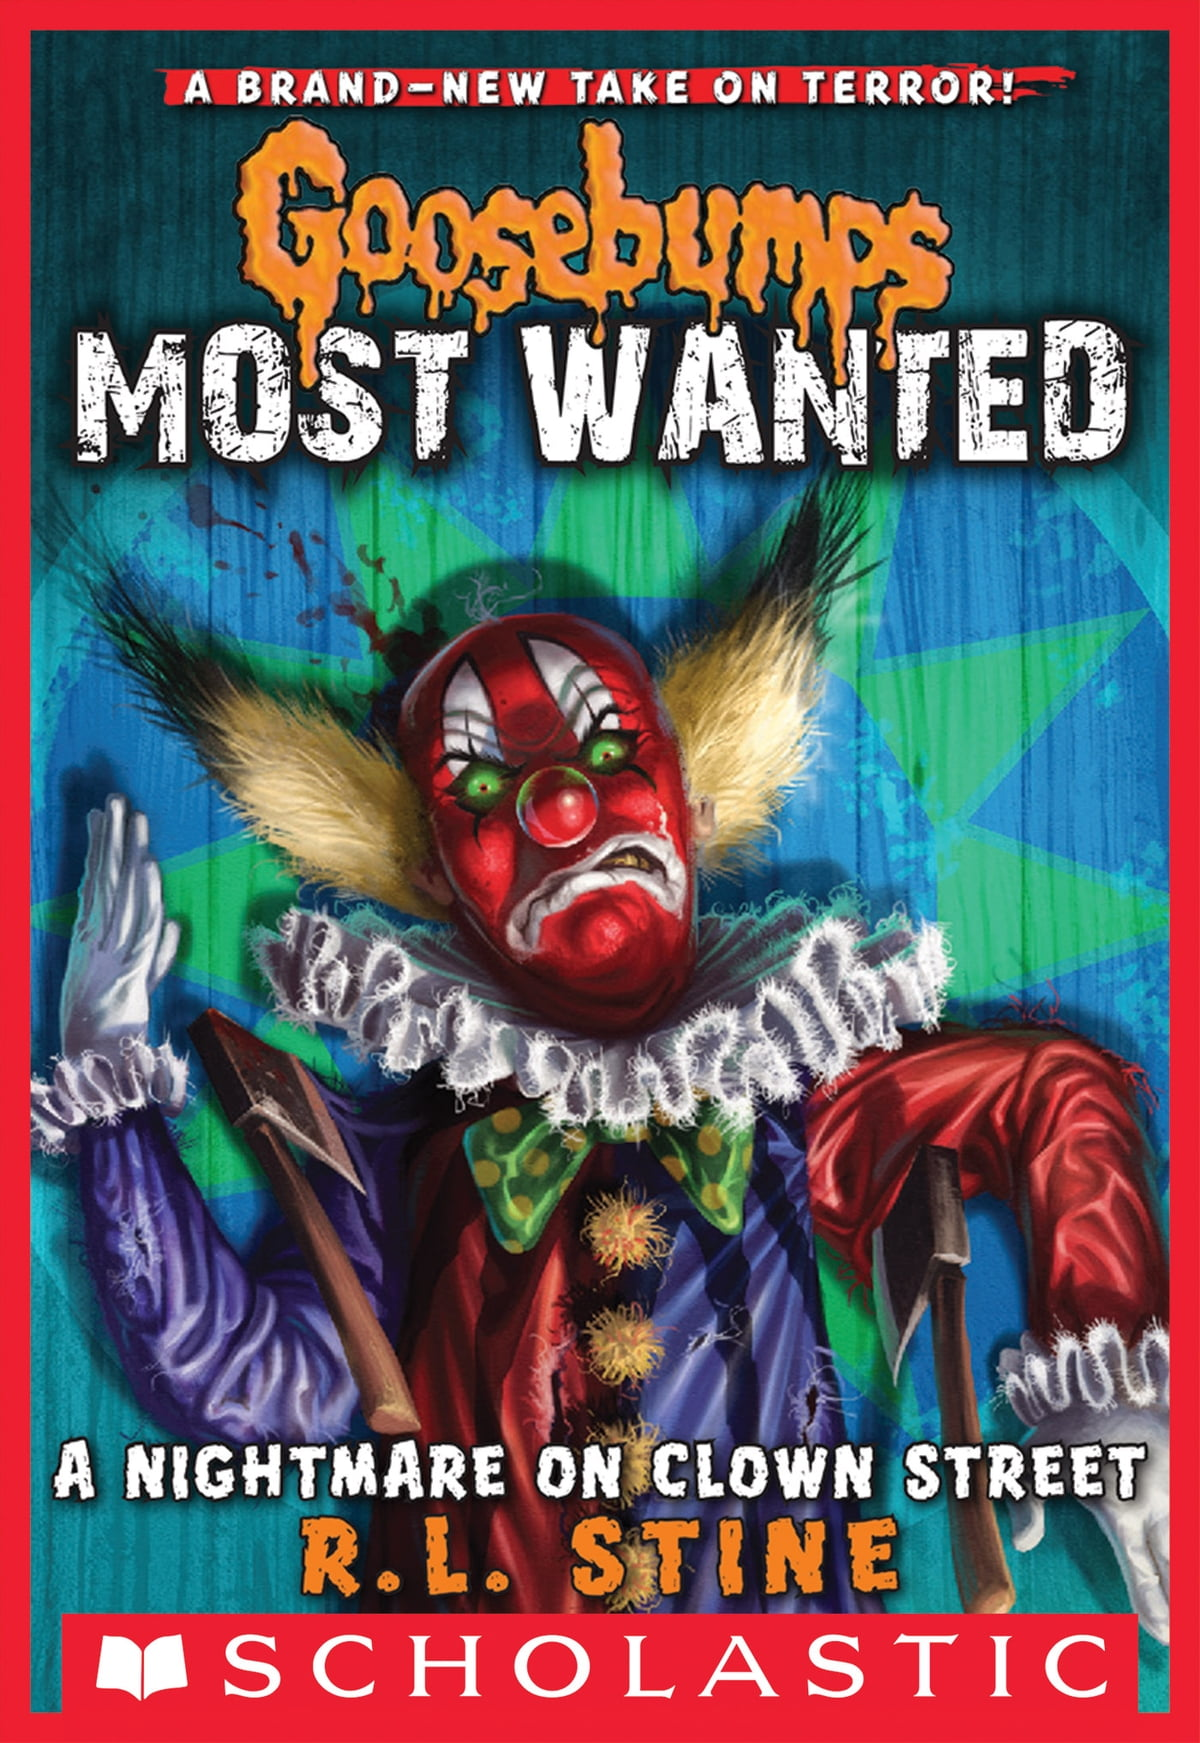 A Nightmare On Clown Street (goosebumps Most Wanted #7) Ebook By Rl Stine   9780545630948  Rakuten Kobo